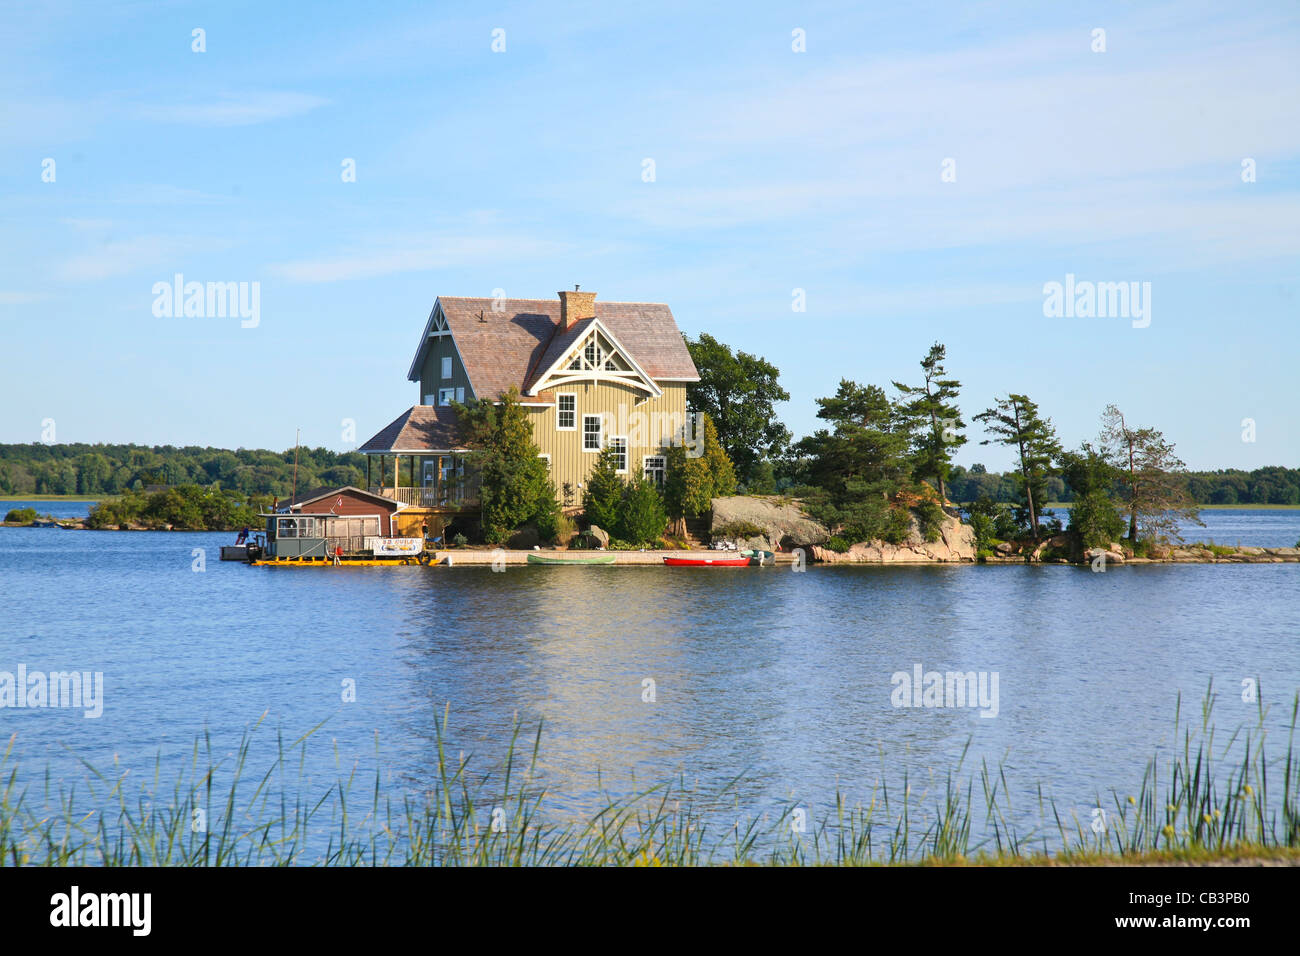 Weekend Homes;Cottages;Homes;Retreat on isolated remote Islands in Europe  and Canada